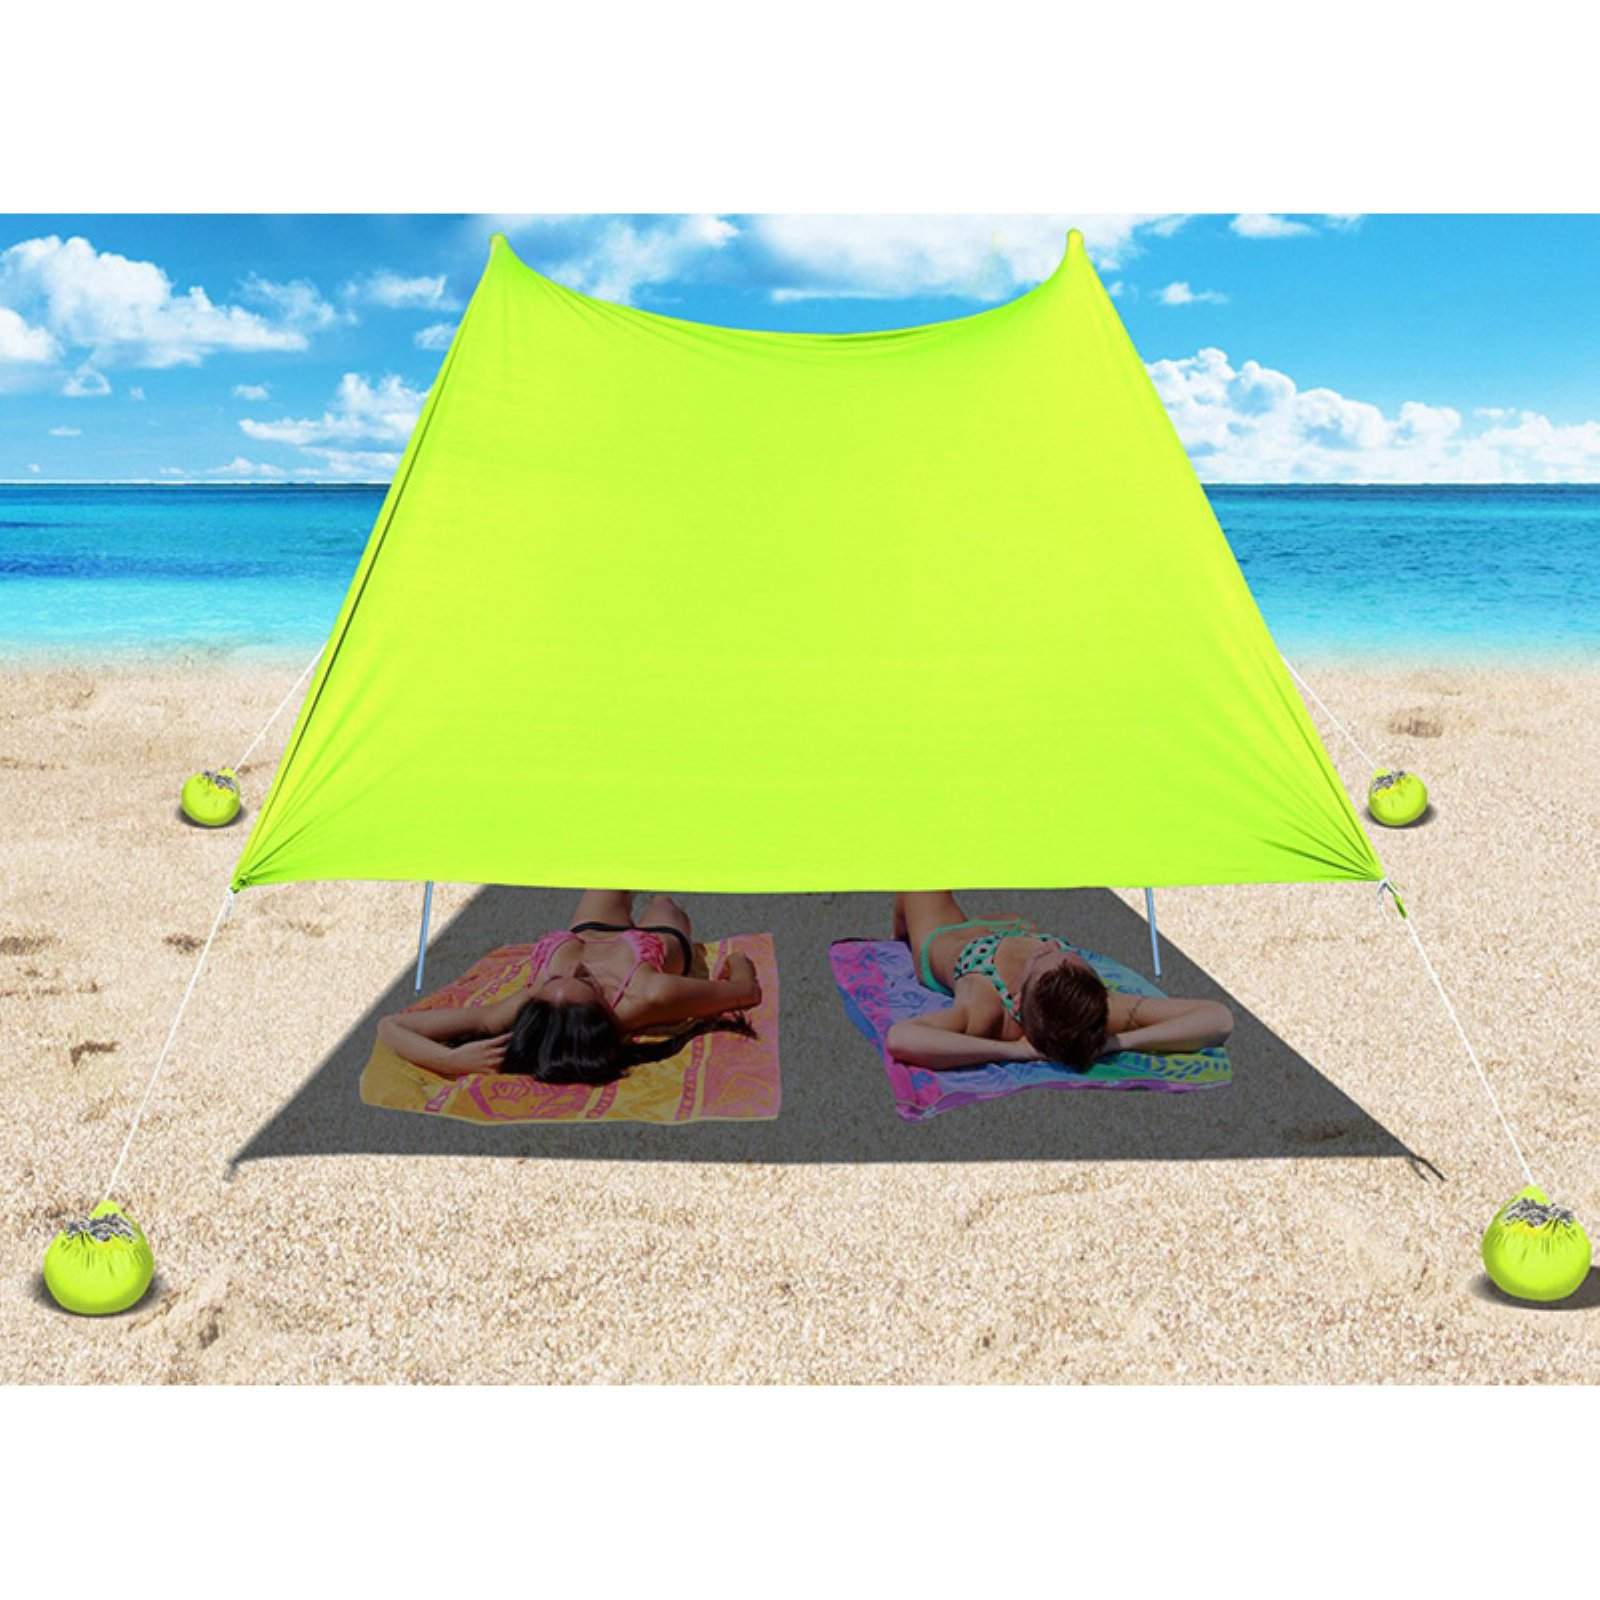 Sunrise Portable Canopy Tent Sun Shelter with Sand Anchor